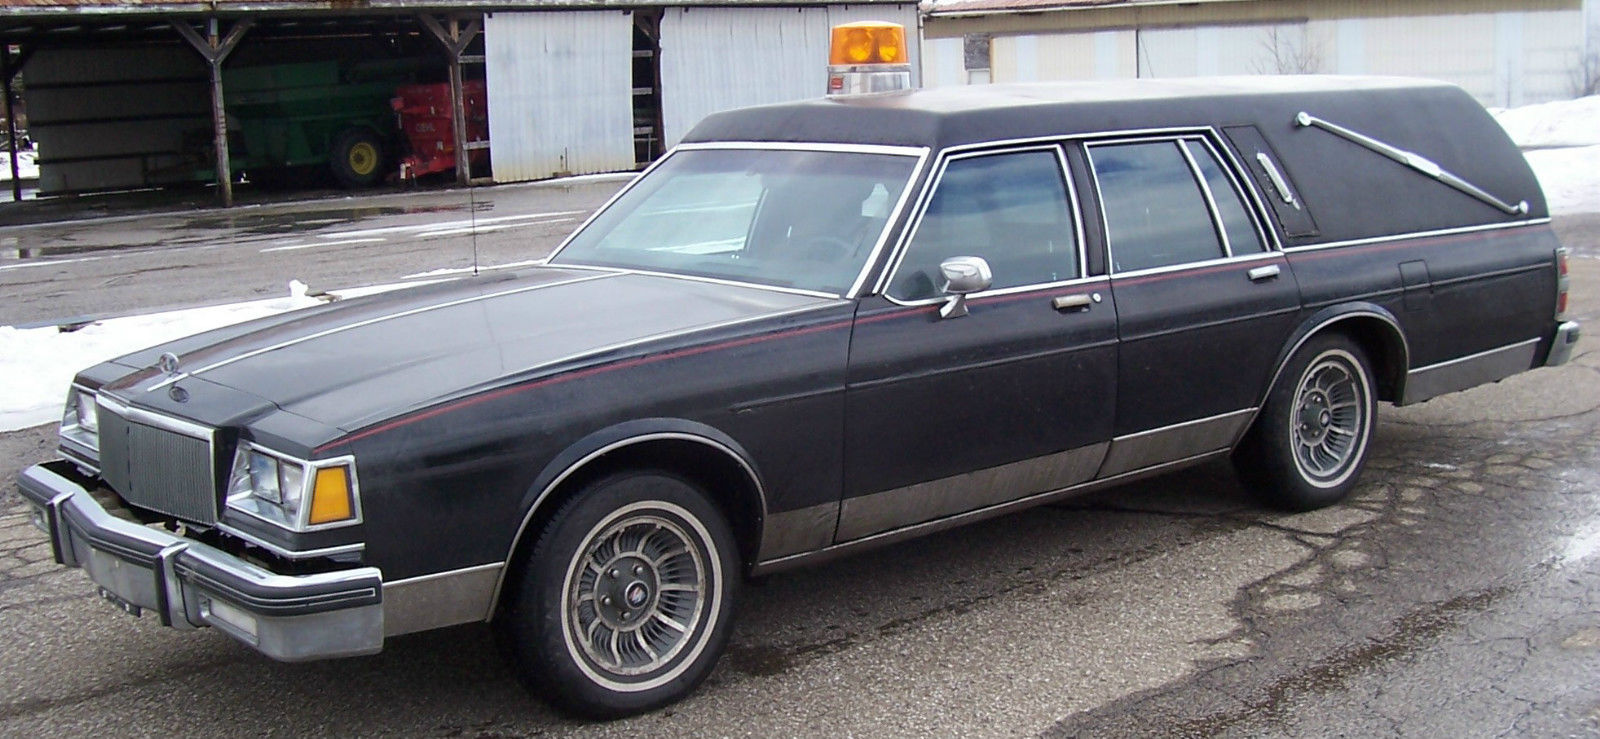 Buick Electra Estate Hearses For Sale on 1987 Buick Lesabre Transmission